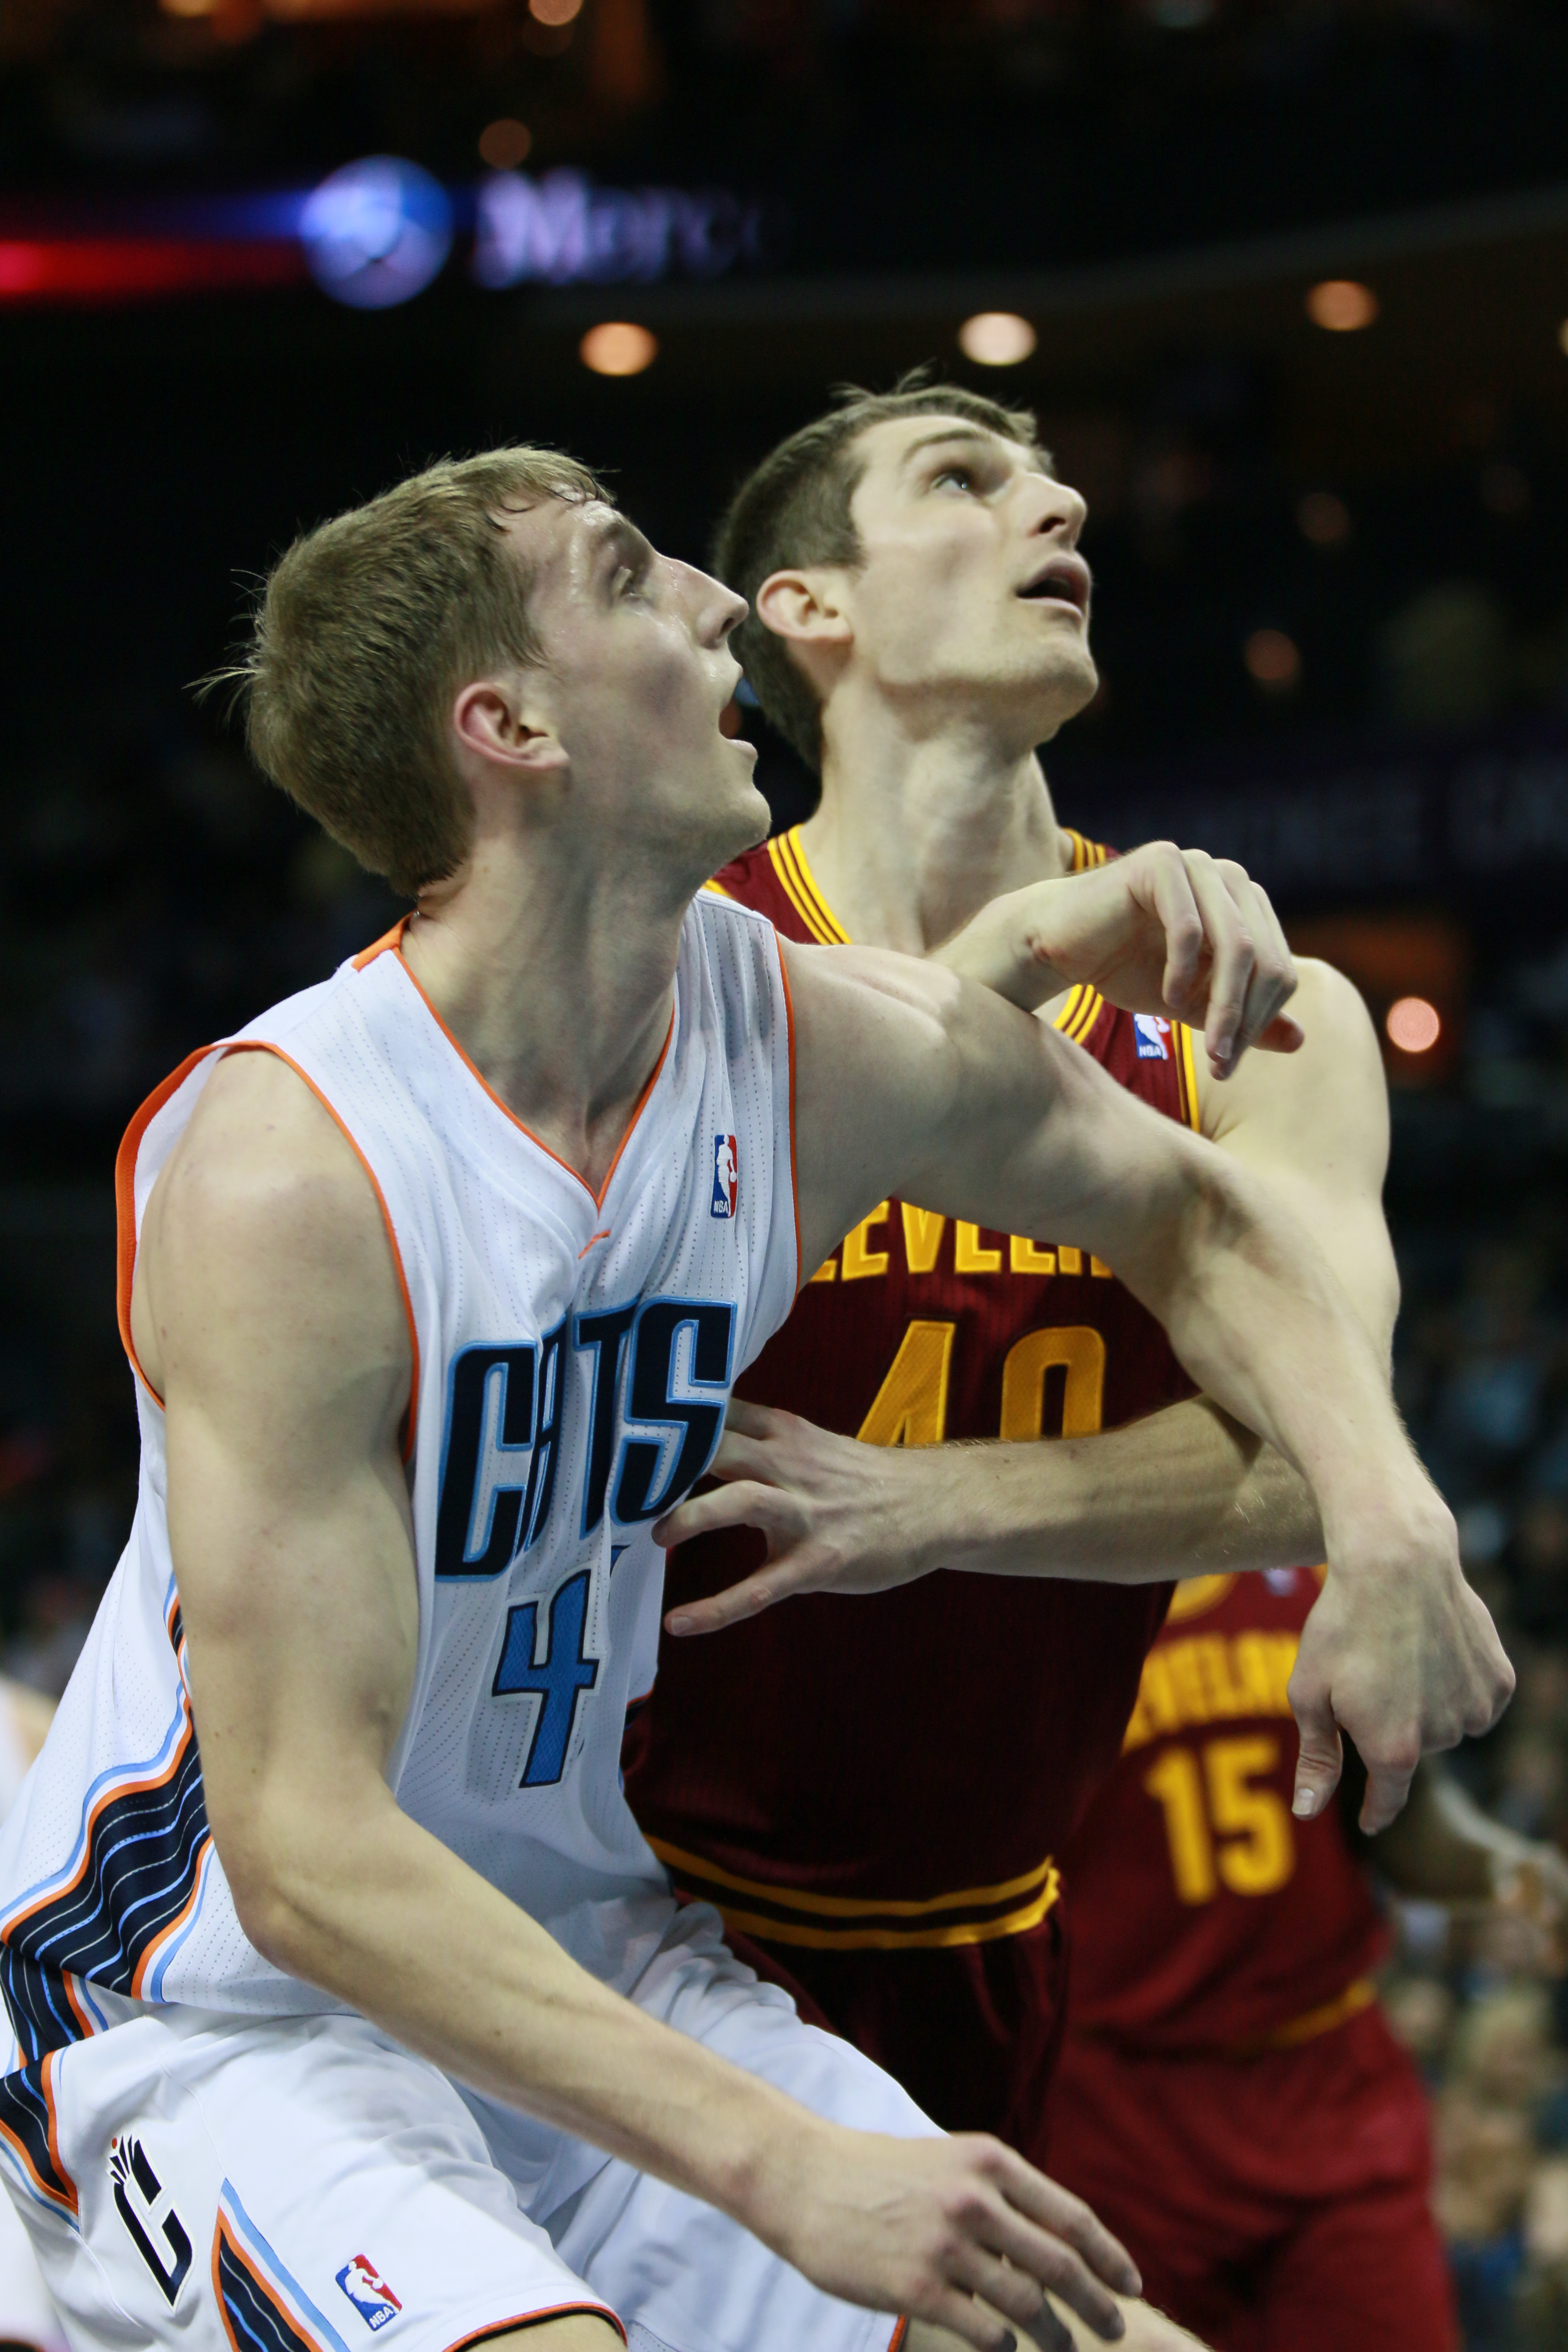 the brothers Zeller